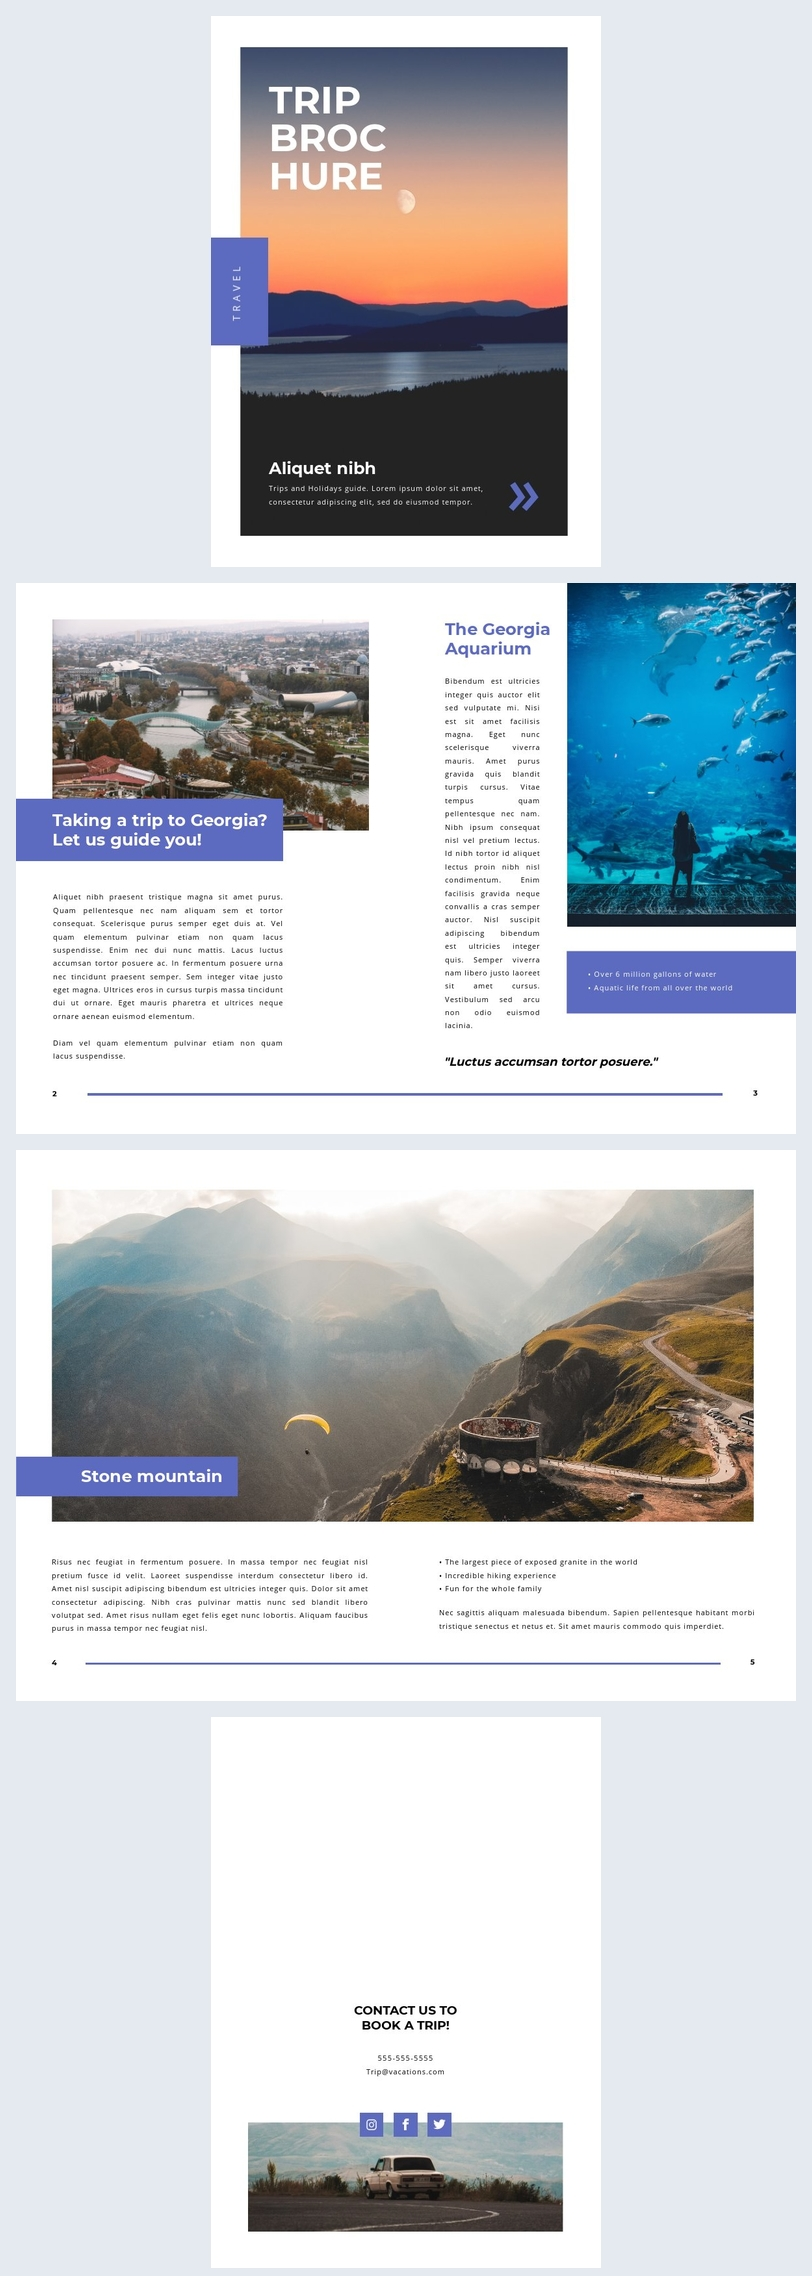 Customizable Trip Brochure Layout Example